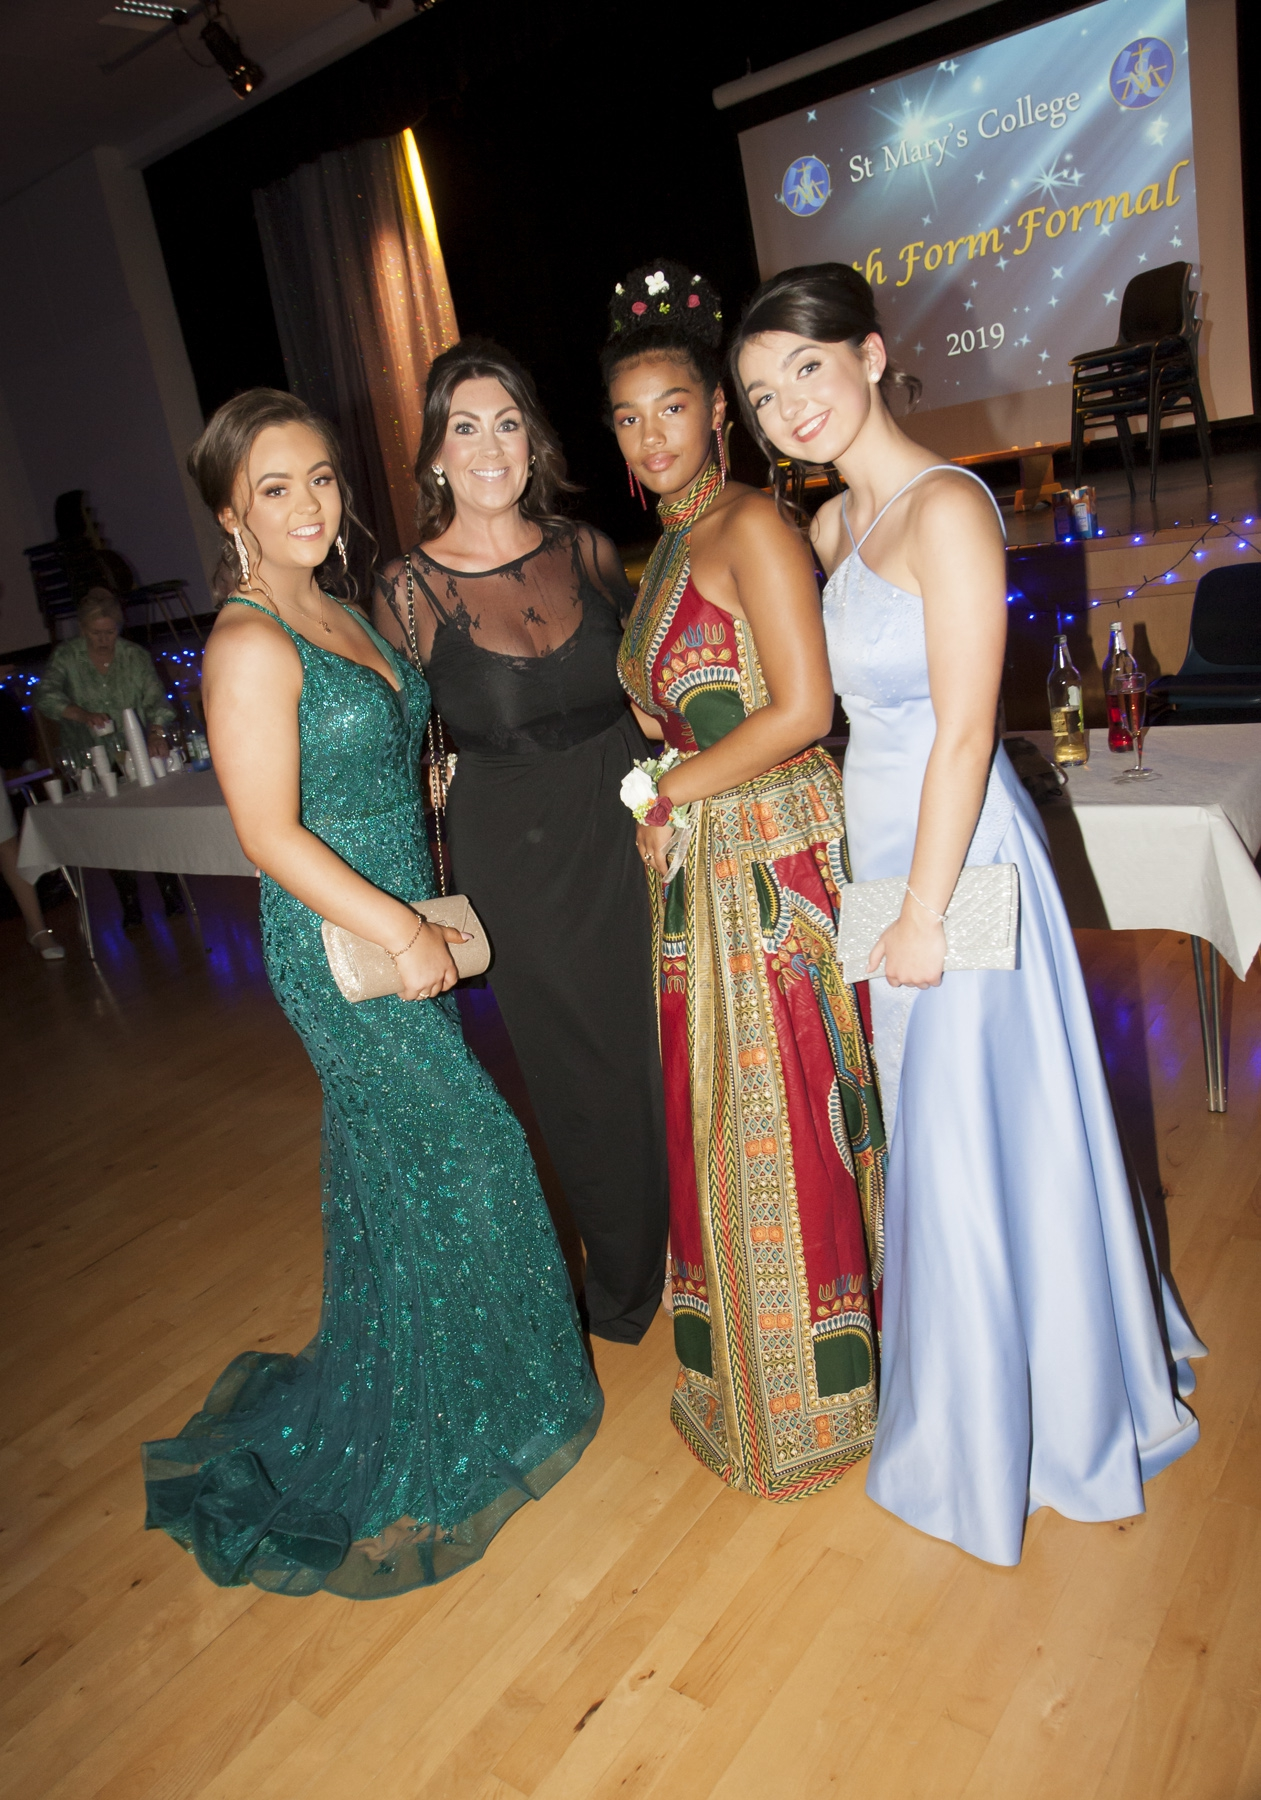 Mrs. McGee pictured with Deirbhile Herron, Ellen Glackin and Eimear Cregan at the  St. Mary's College Annual Formal on Thursday night last. (Photos: Jim McCafferty Photography)